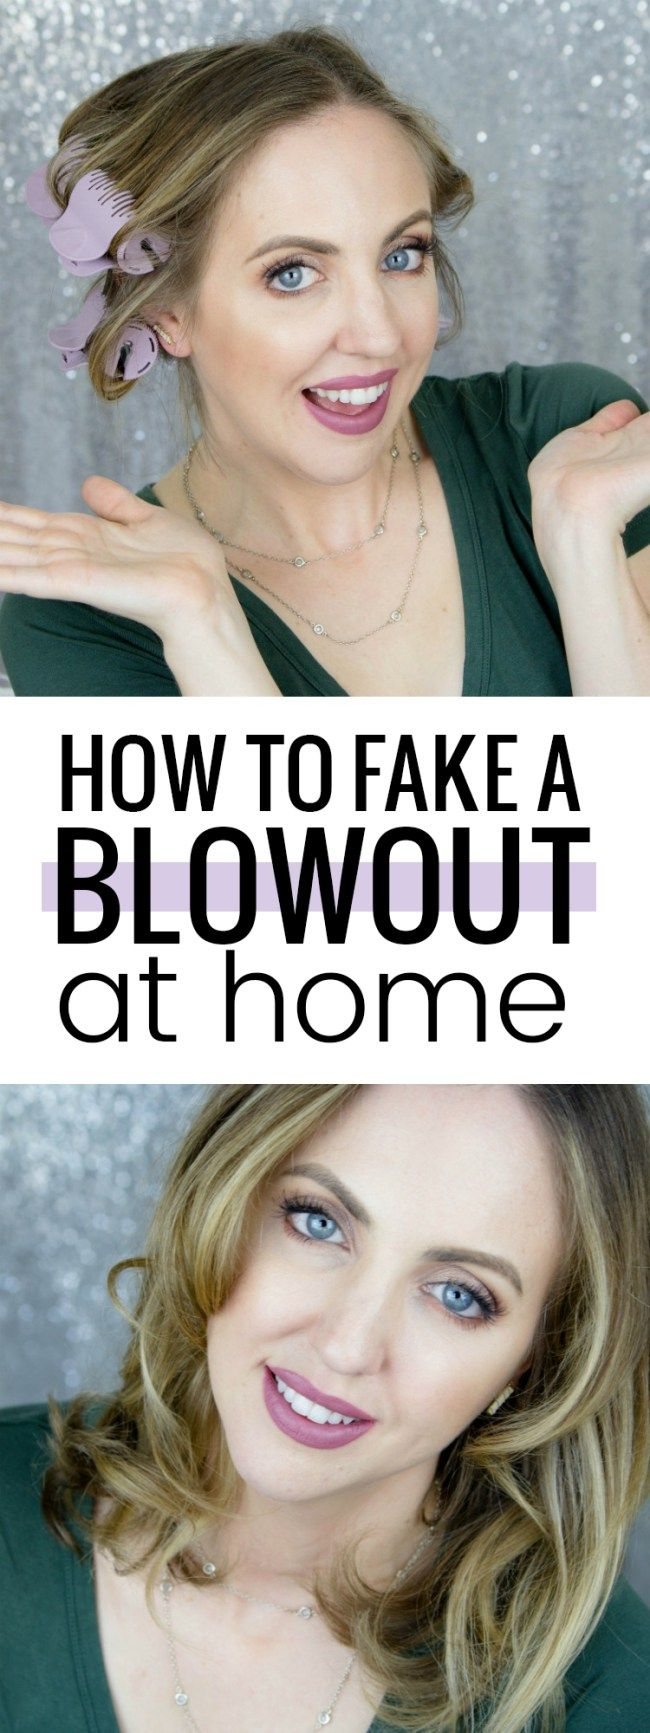 Fake a blowout at home bouncy curls voluminous curls and hair dryer